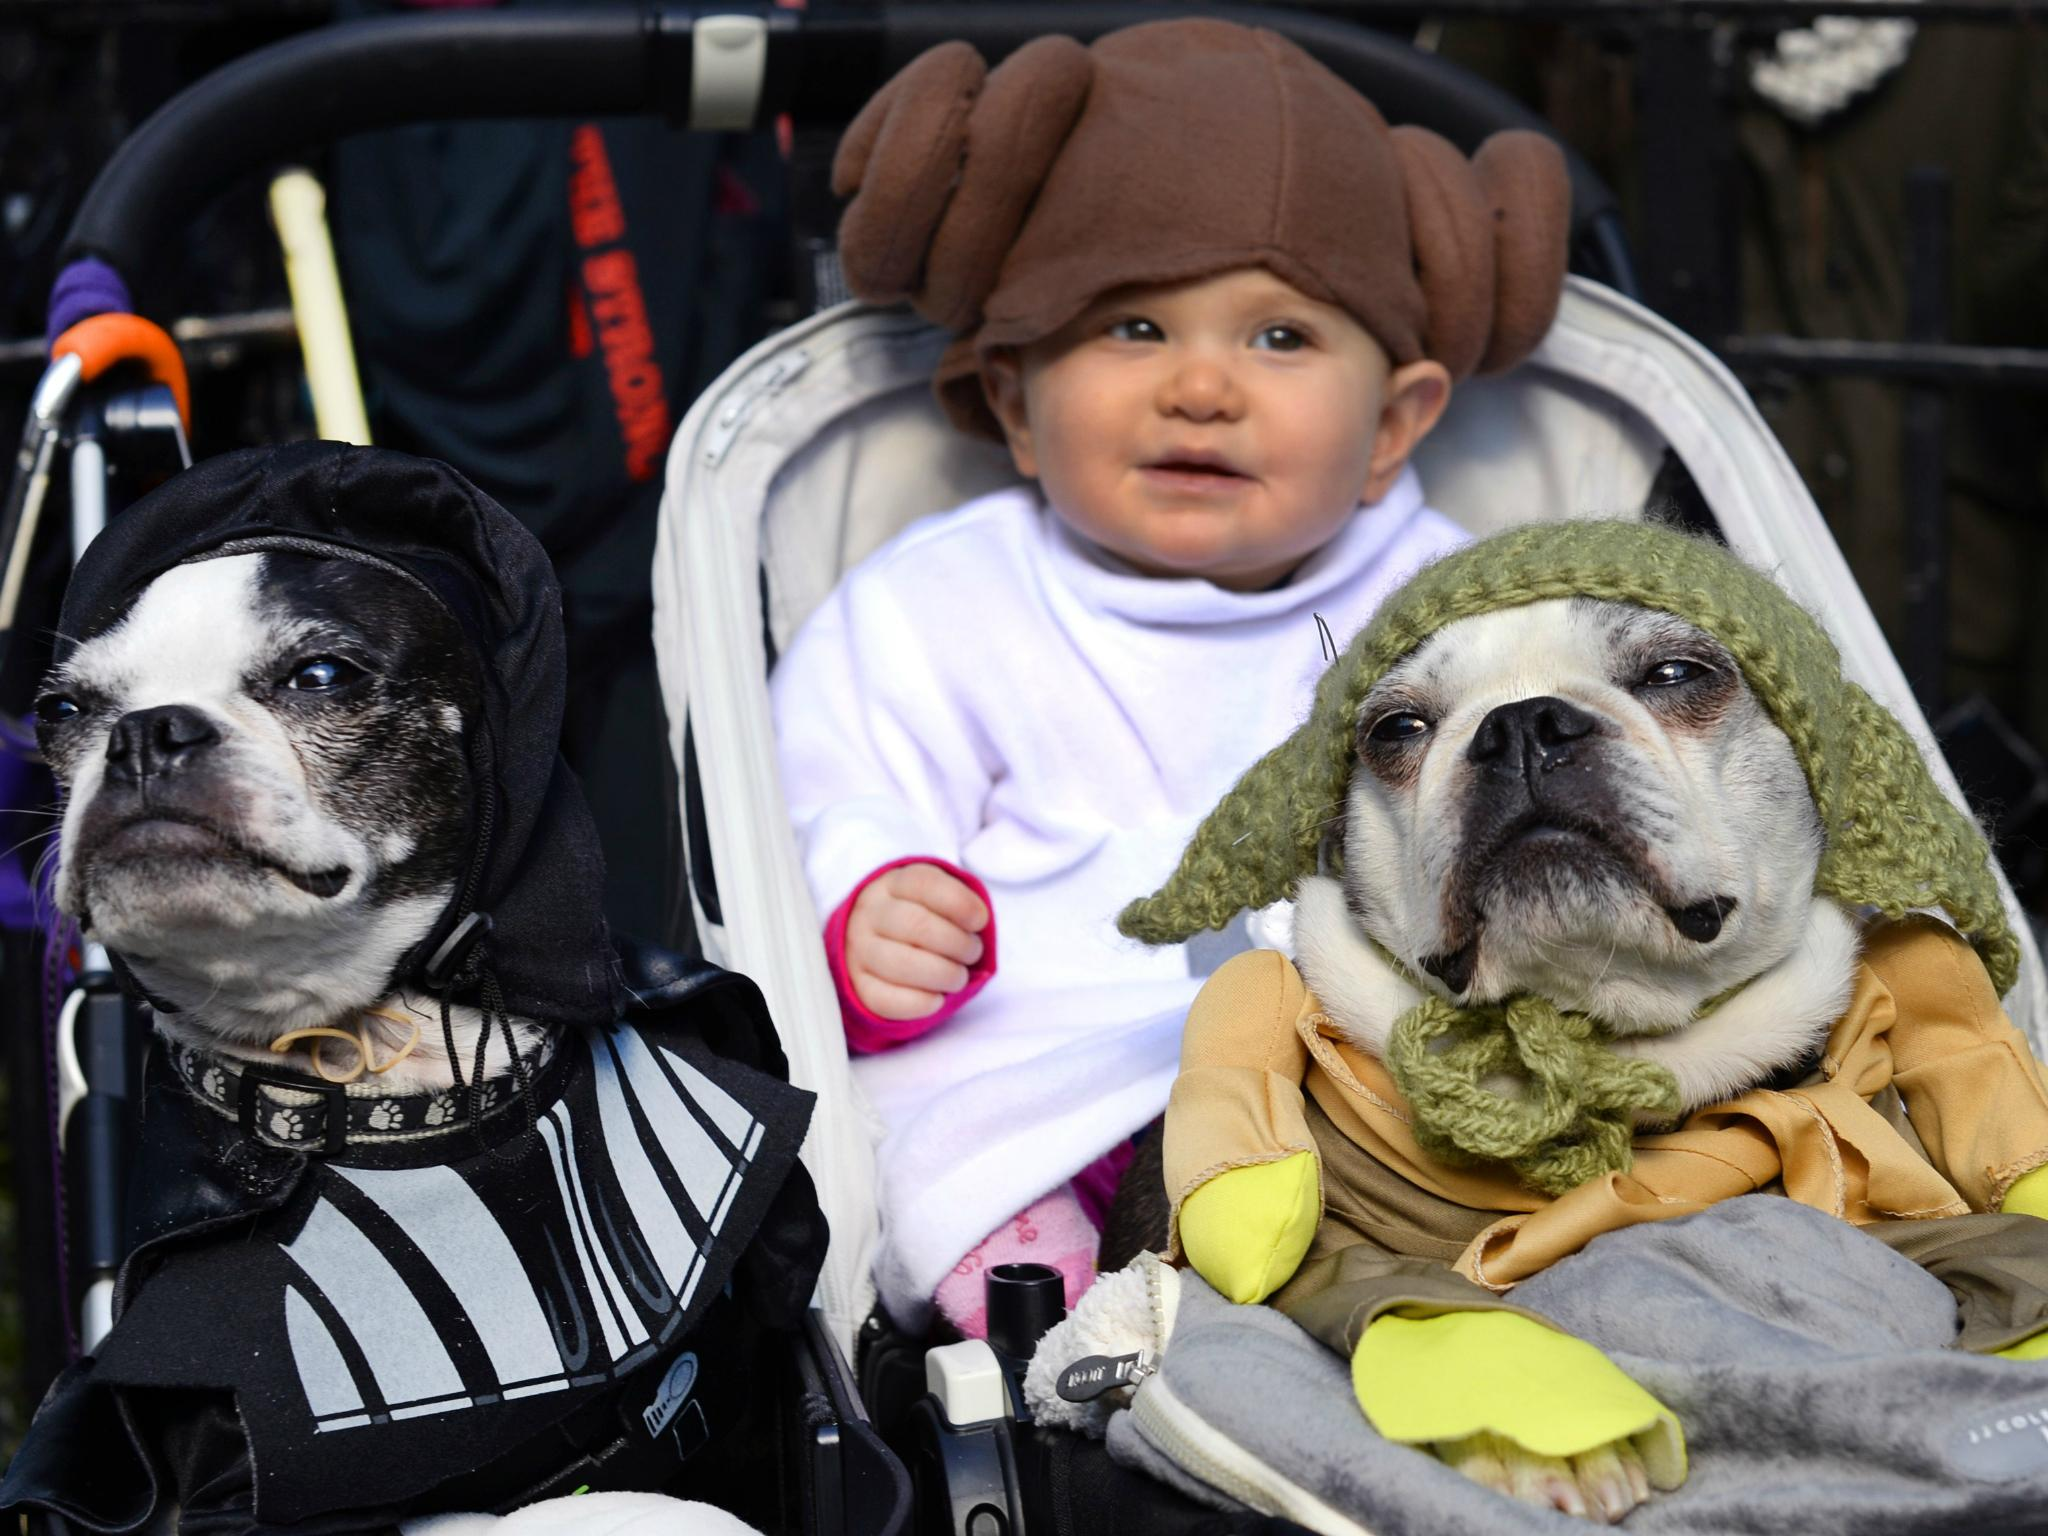 Living with dogs can help protect babies from range of illnesses like asthma